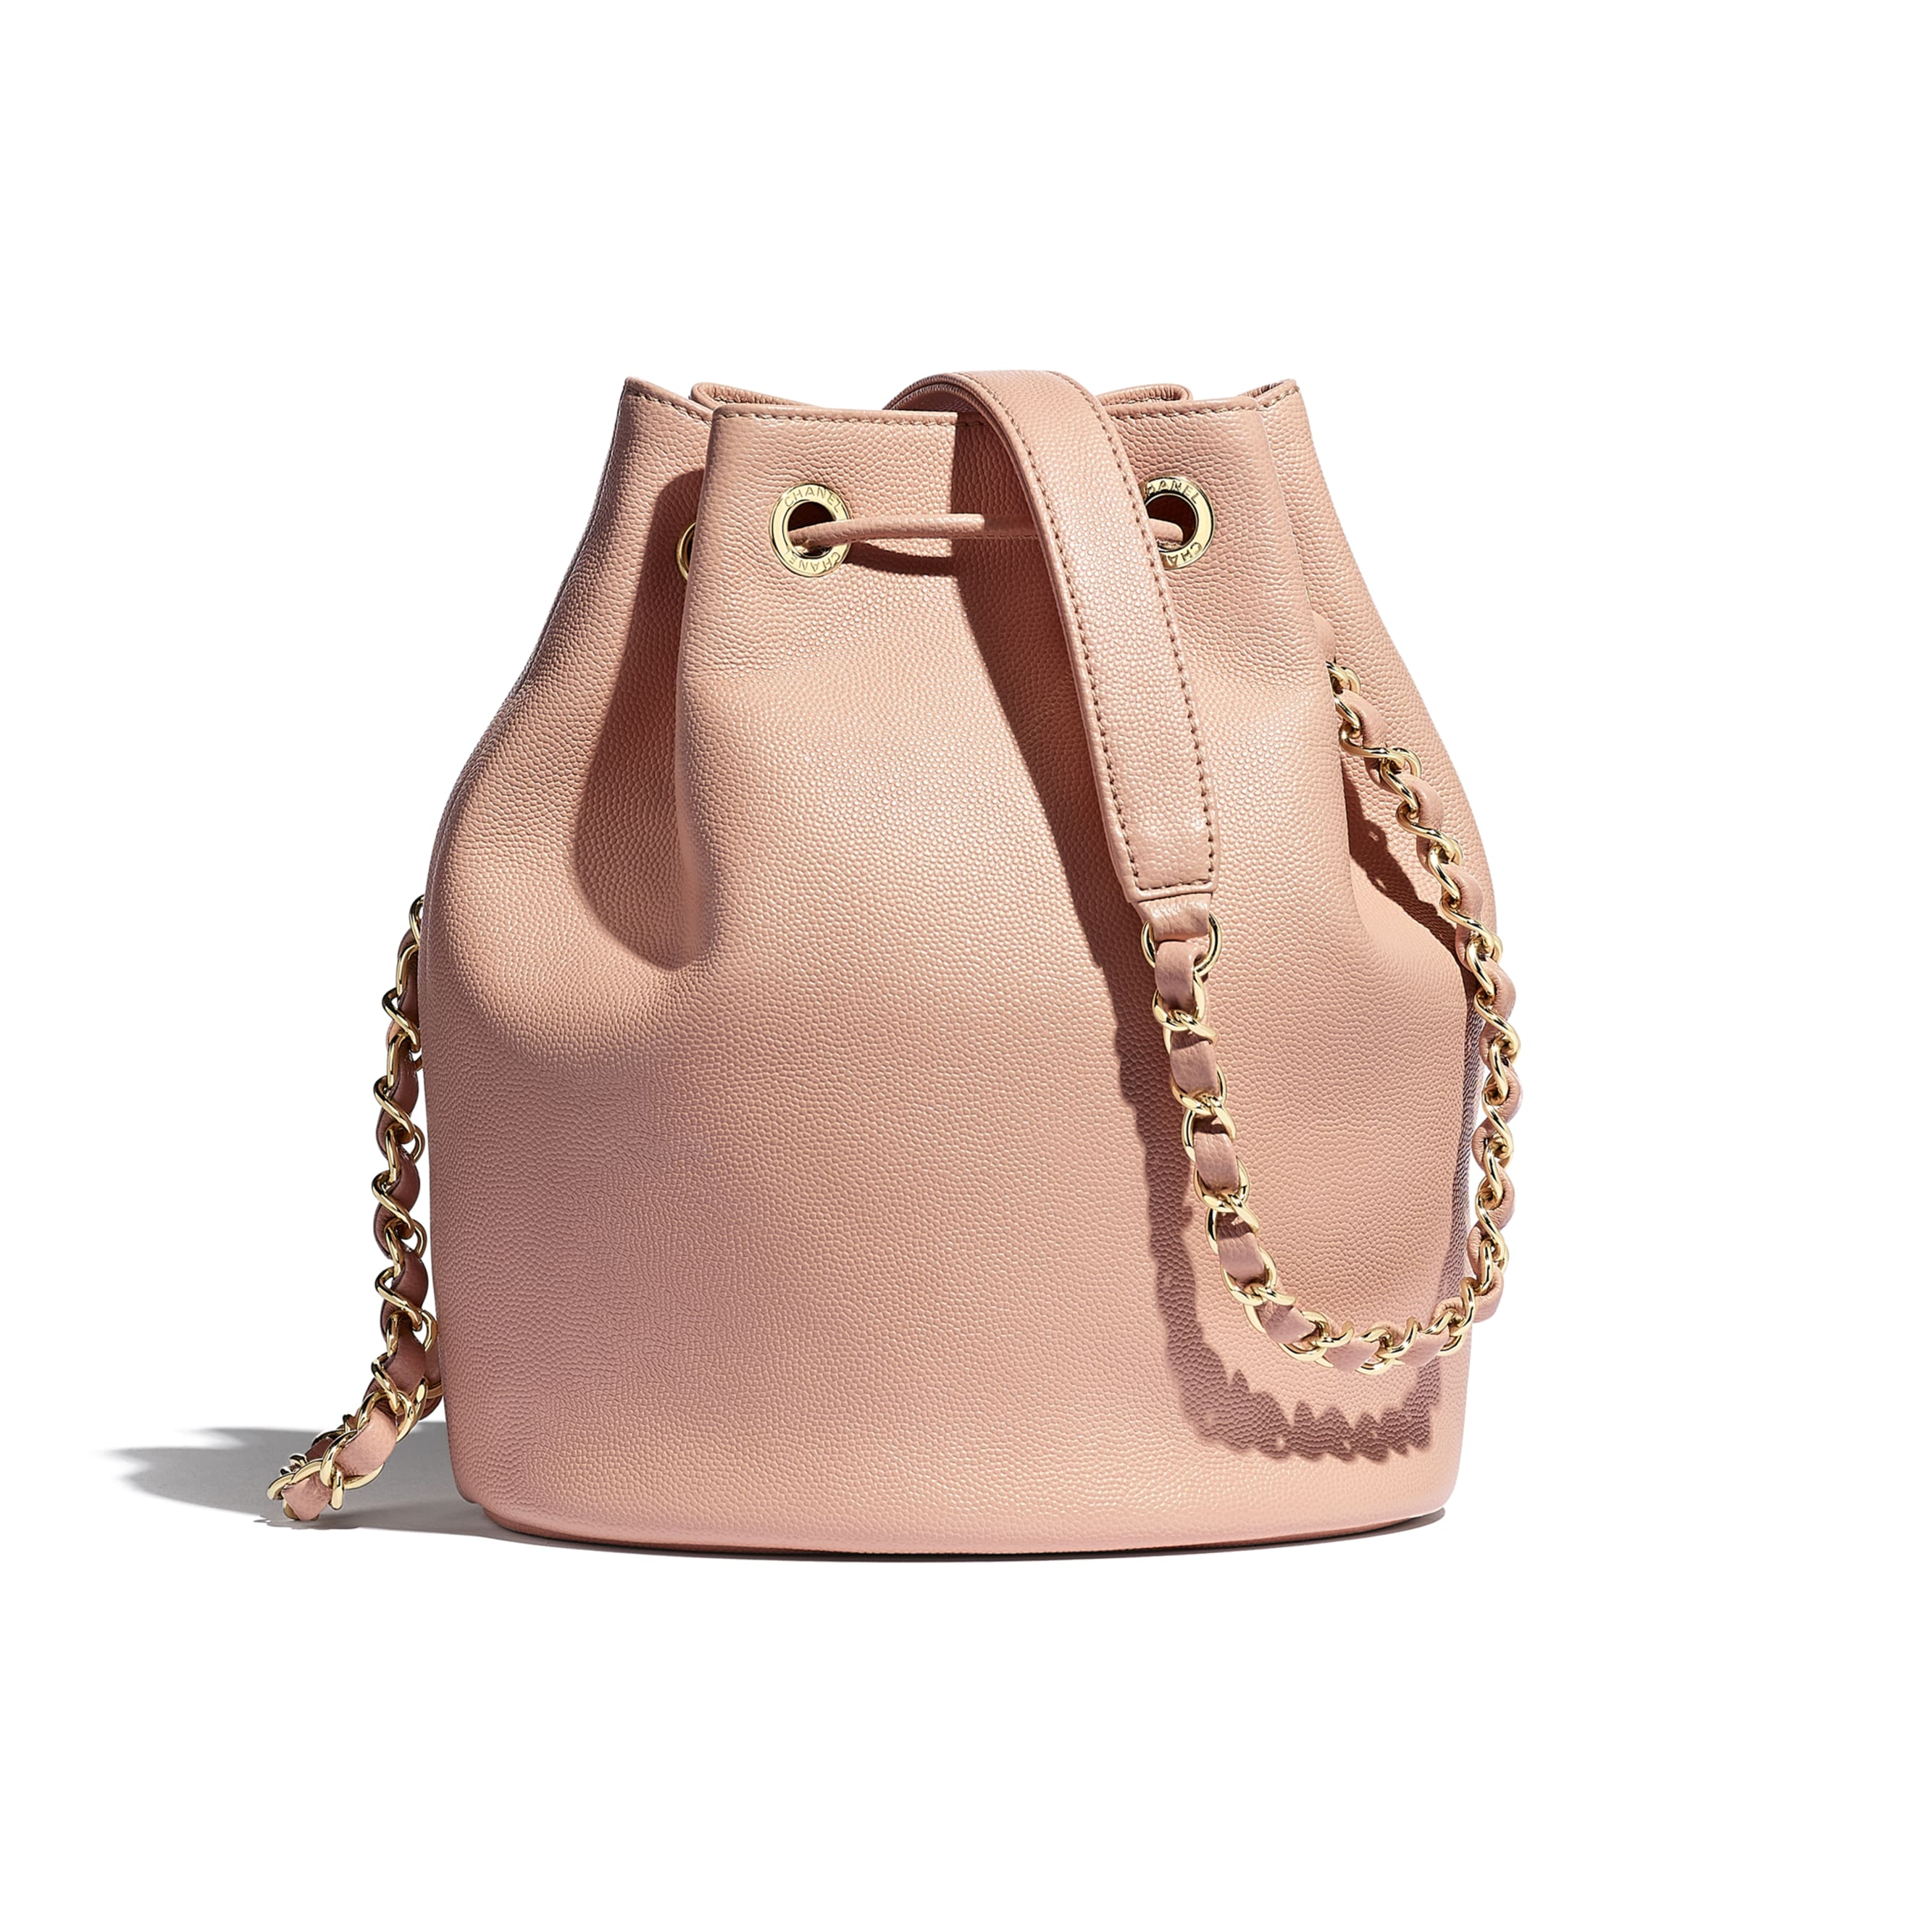 Small Drawstring Bag - Light Pink - Grained Calfskin, Studs & Gold-Tone Metal - Alternative view - see standard sized version